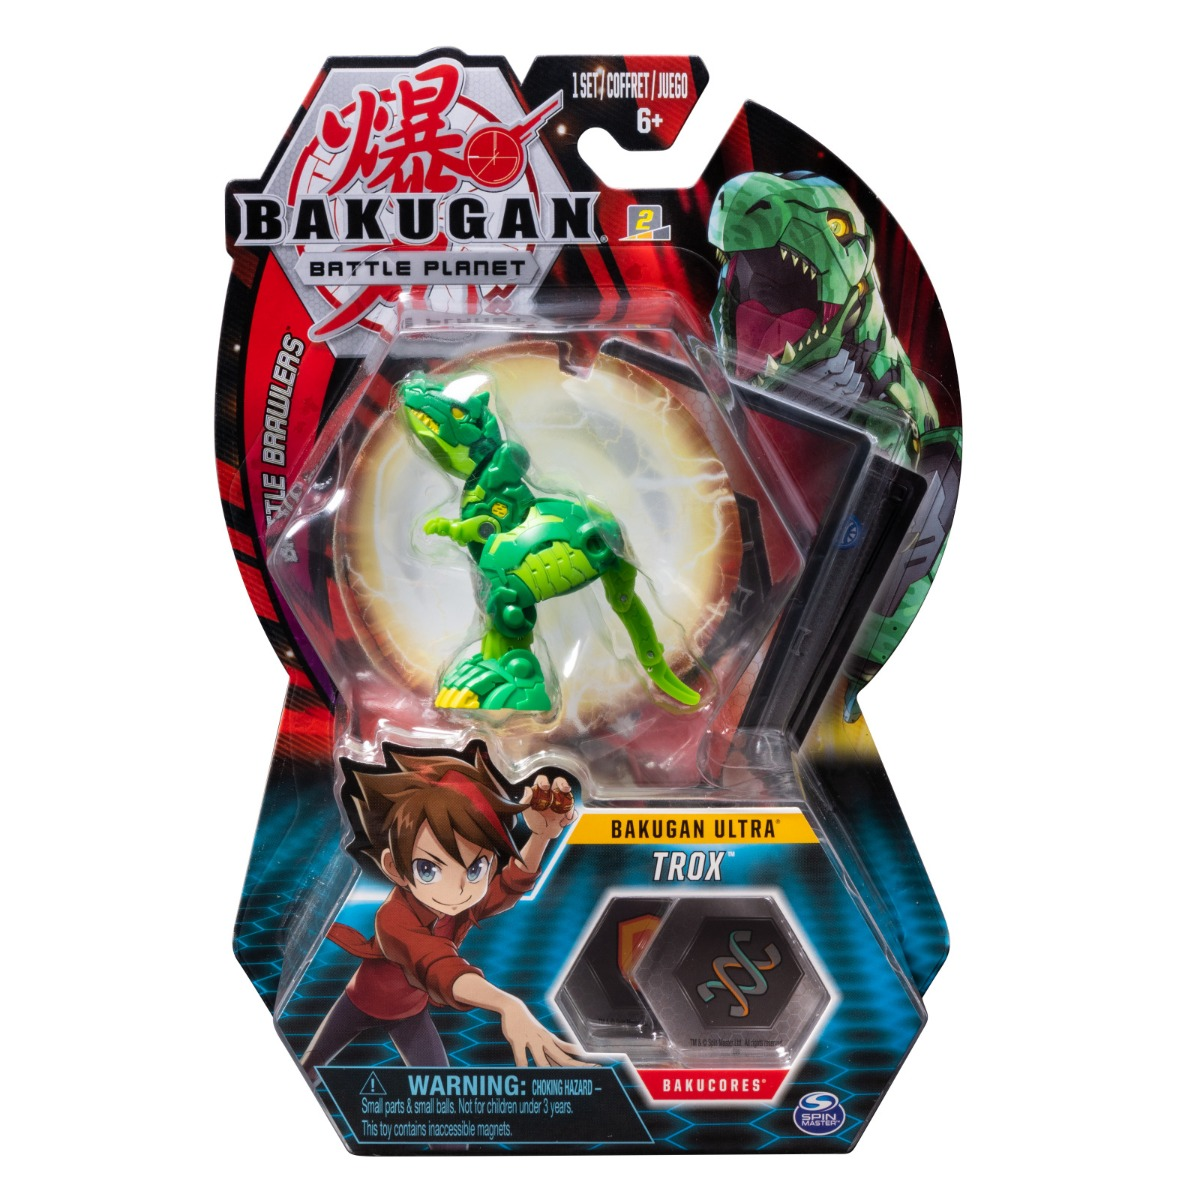 Figurina Bakugan Ultra Battle Planet, 11C T-Rex Green, 20108453